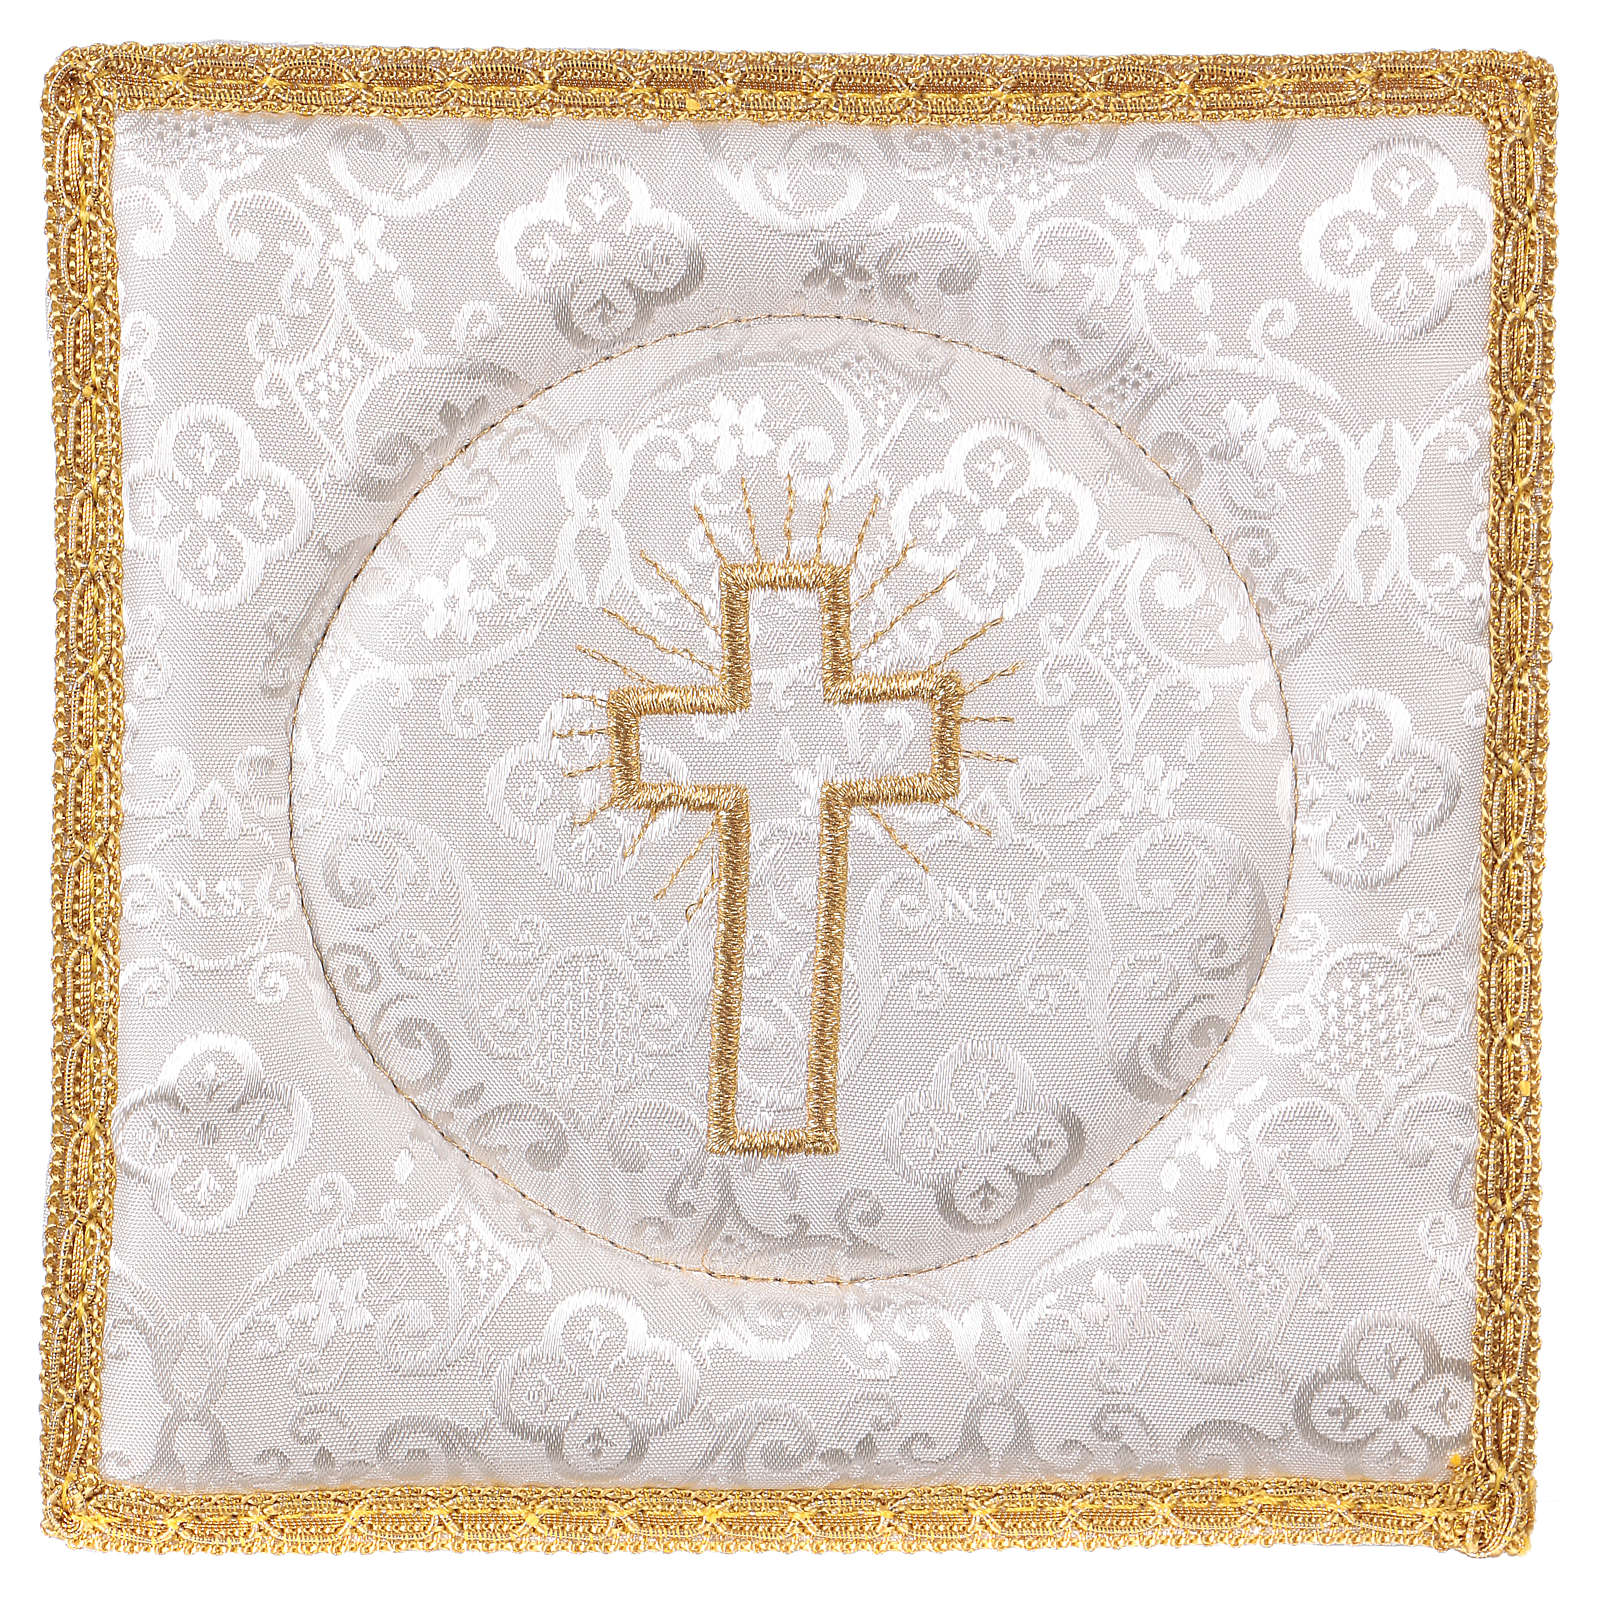 Chalice pall with cross embroidery, white damask 4